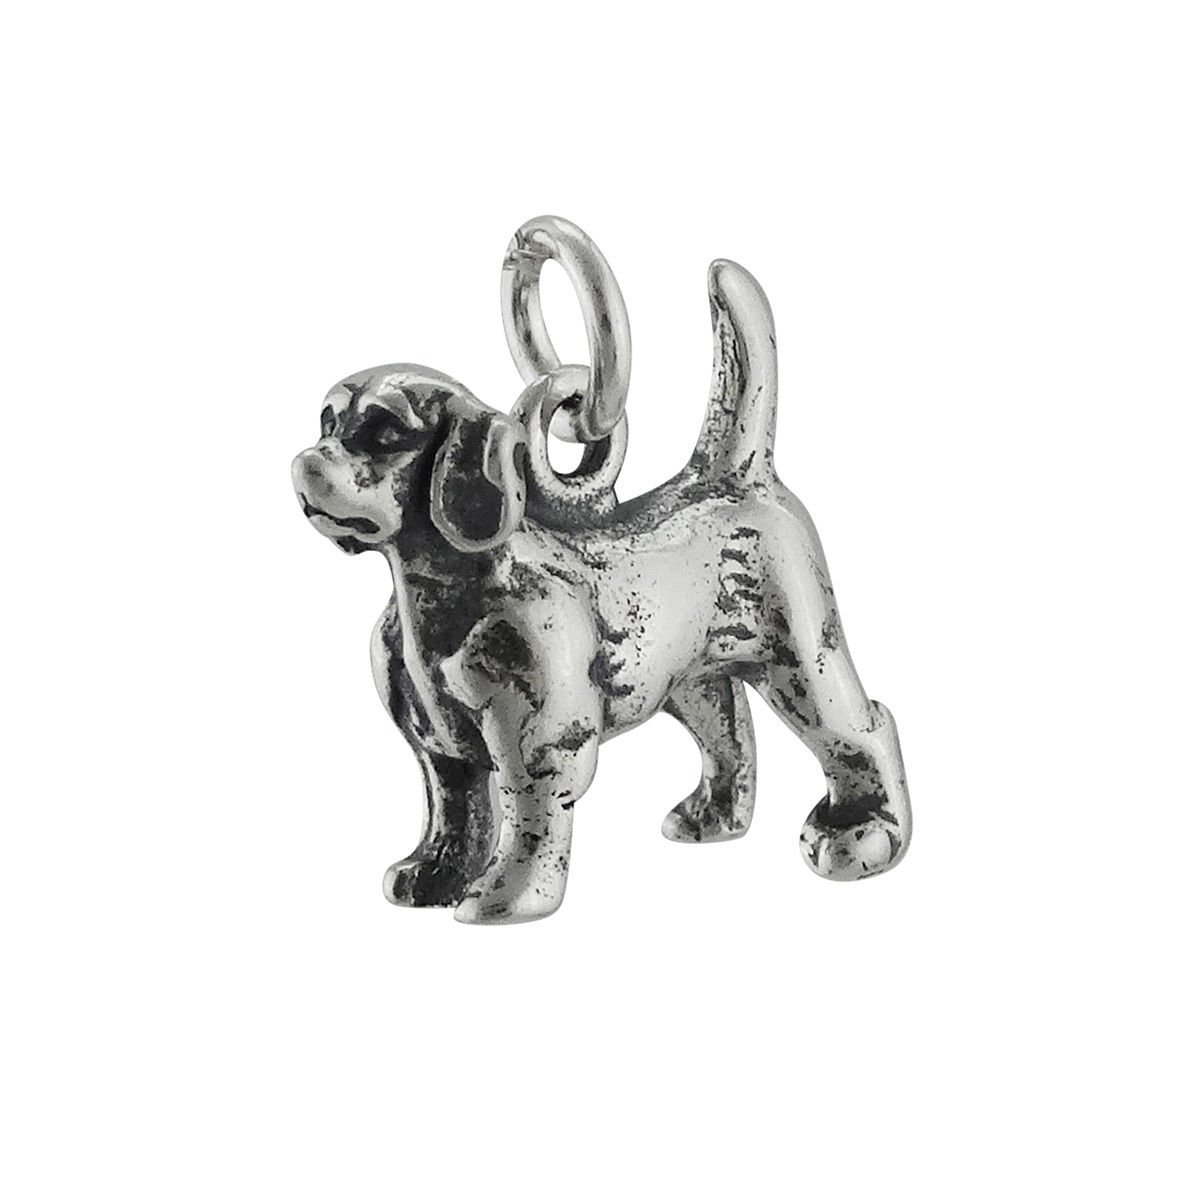 Beagle Dog Charm - 925 Sterling Silver - Pet Puppy Bark Spots Jewelry Making Supply, Pendant, Charms, Bracelet, DIY Crafting by Wholesale Charms